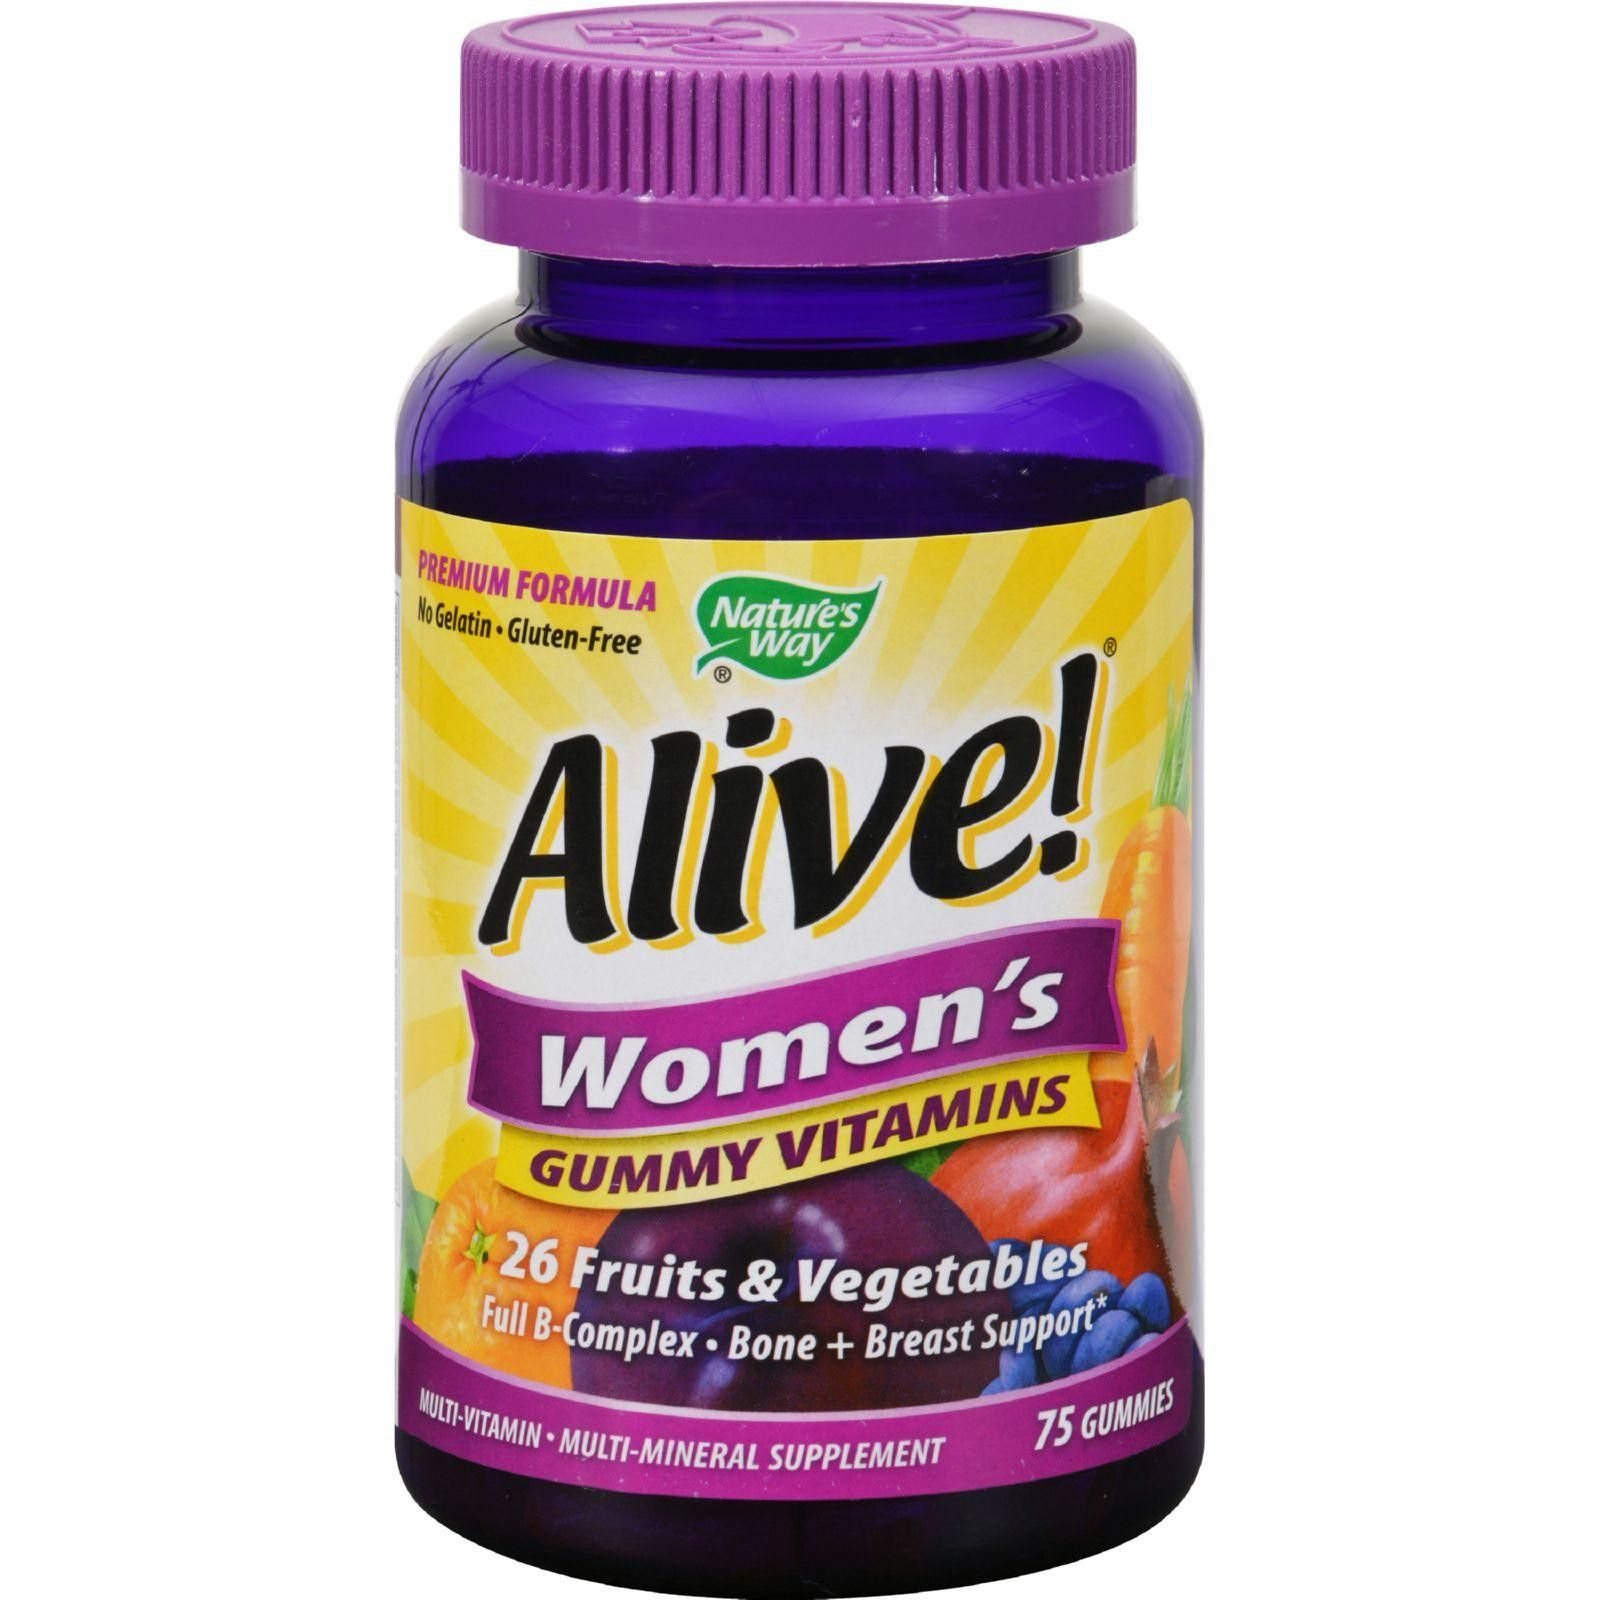 Natures way alive womens energy gummy multivitamins